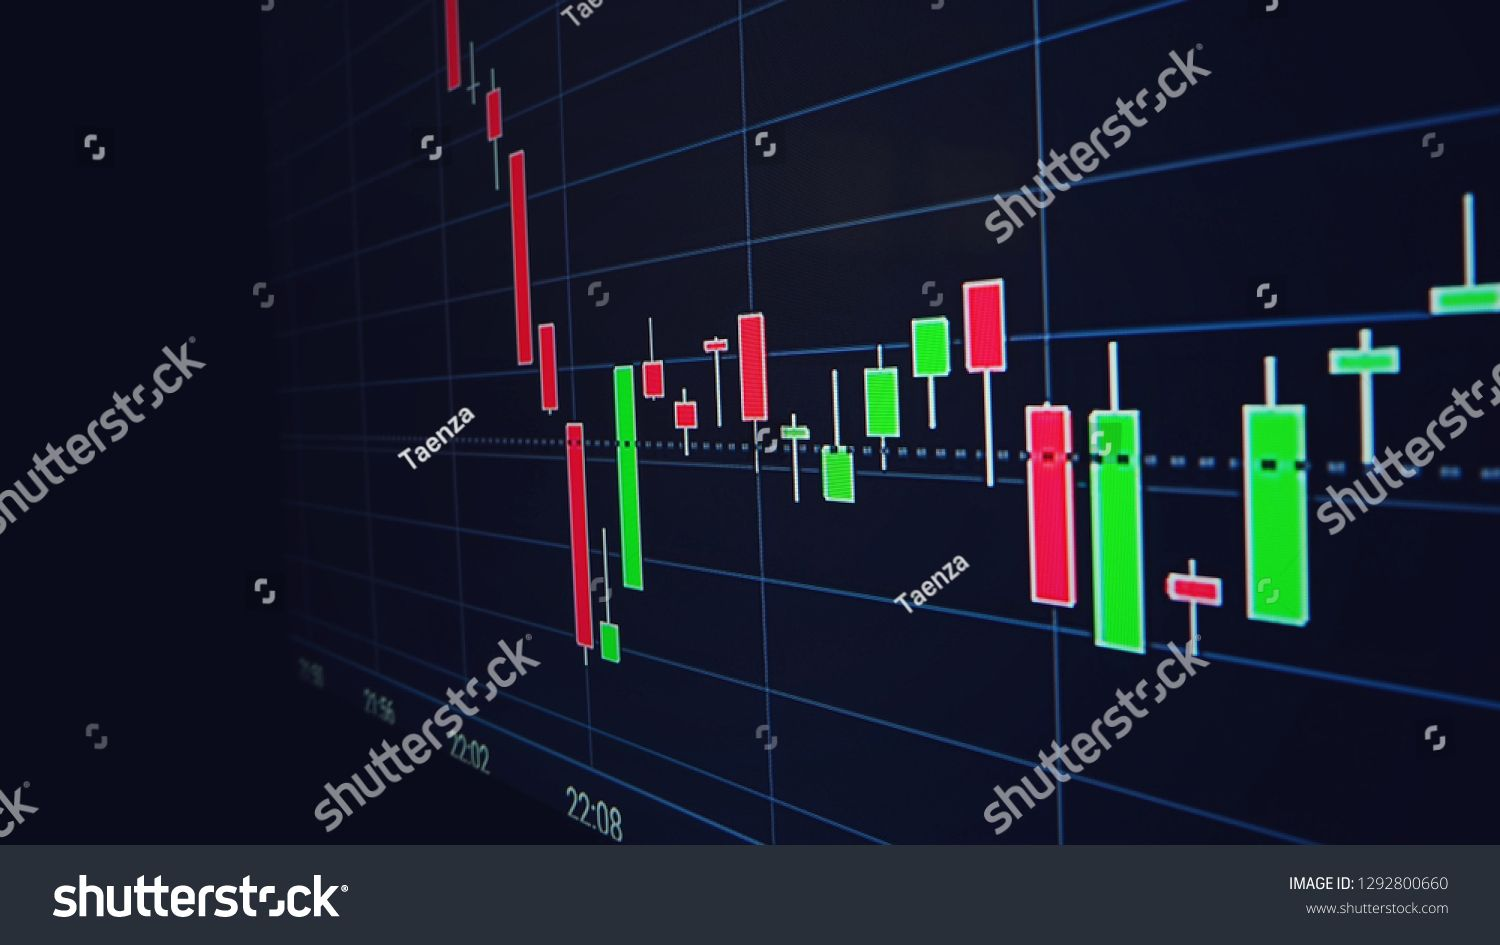 Candlesticks On Forex Business Candle Stick Graph Chart Of Stock Market Investment Trading Stock Market Or F Stock Market Investing Stock Charts Stock Market